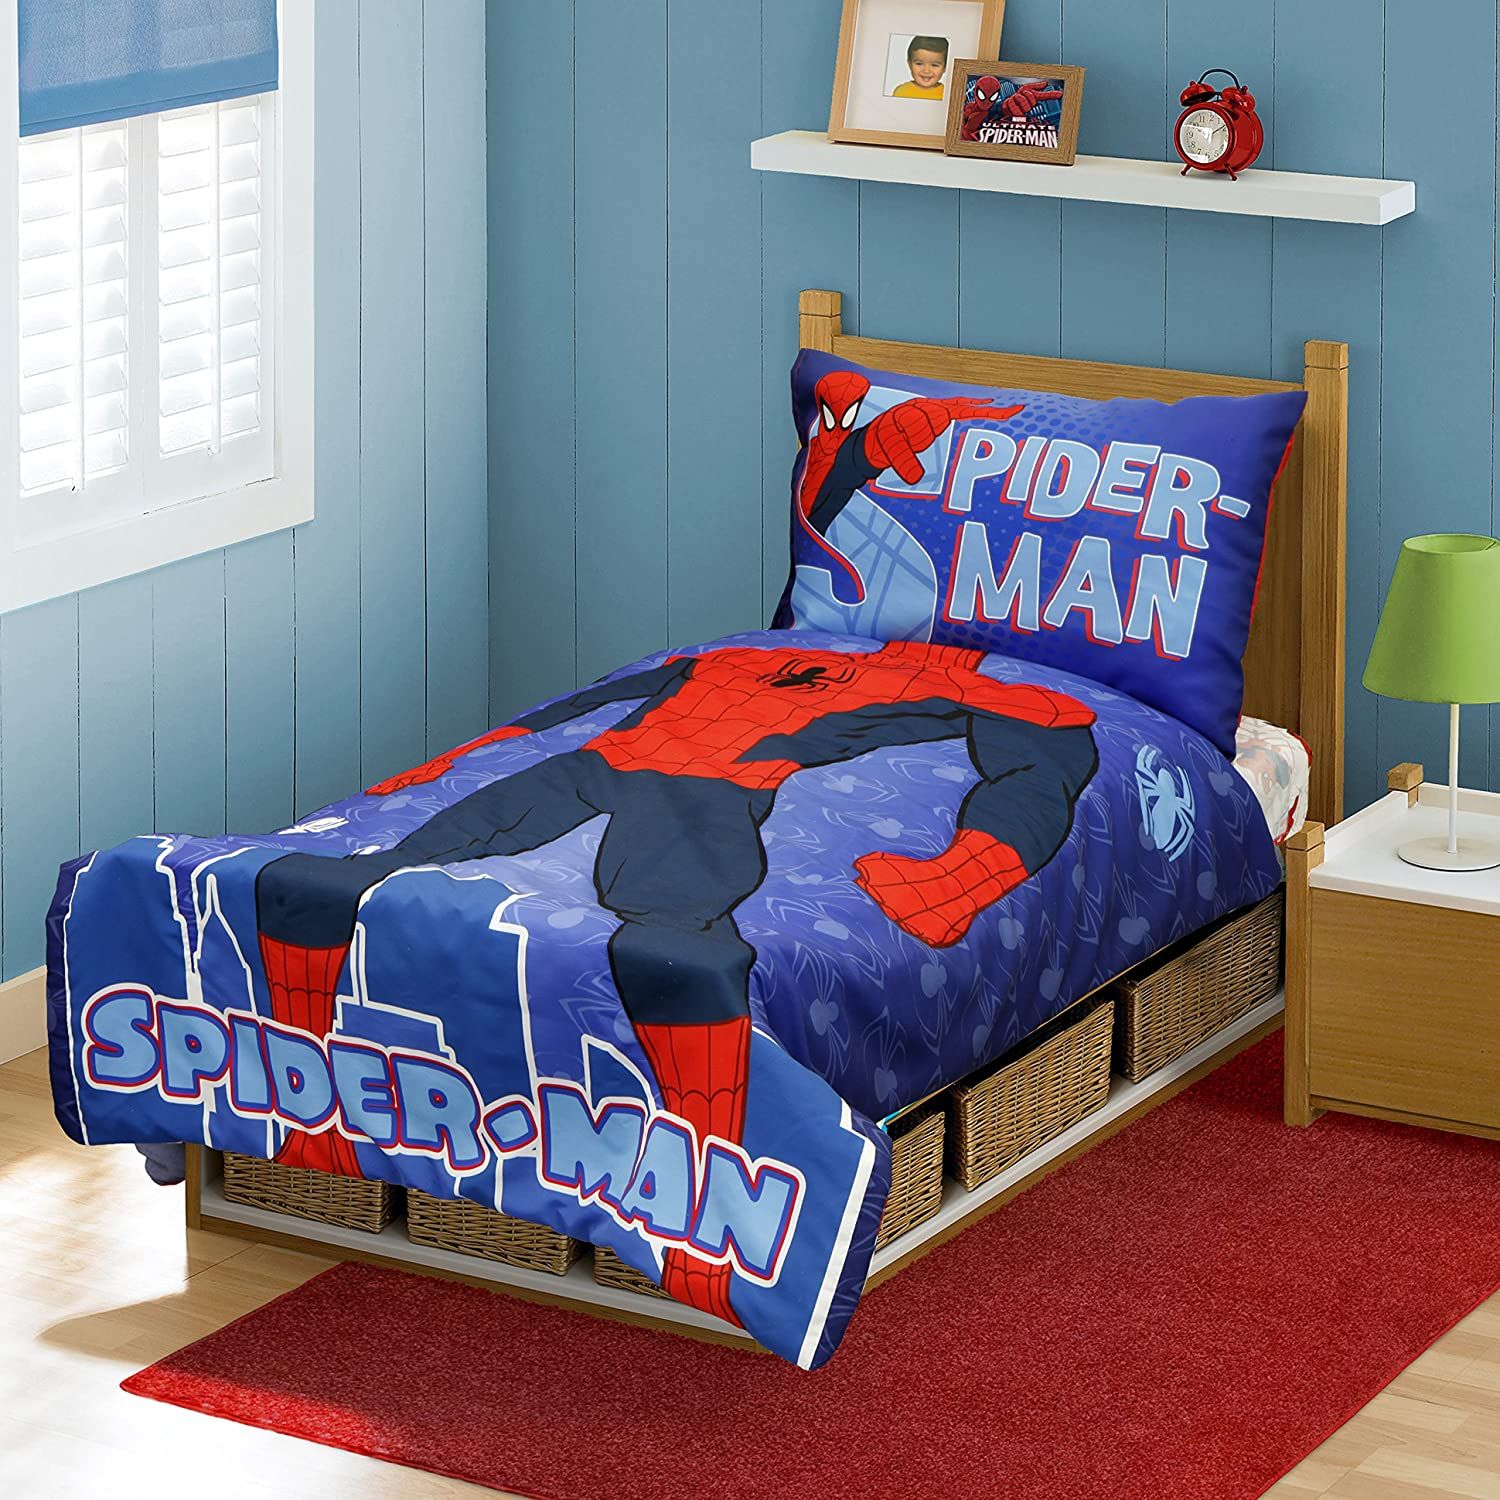 Marvel Spiderman I am Spiderman Toddler Bed Set, Multi Bab Boom SMD11489S